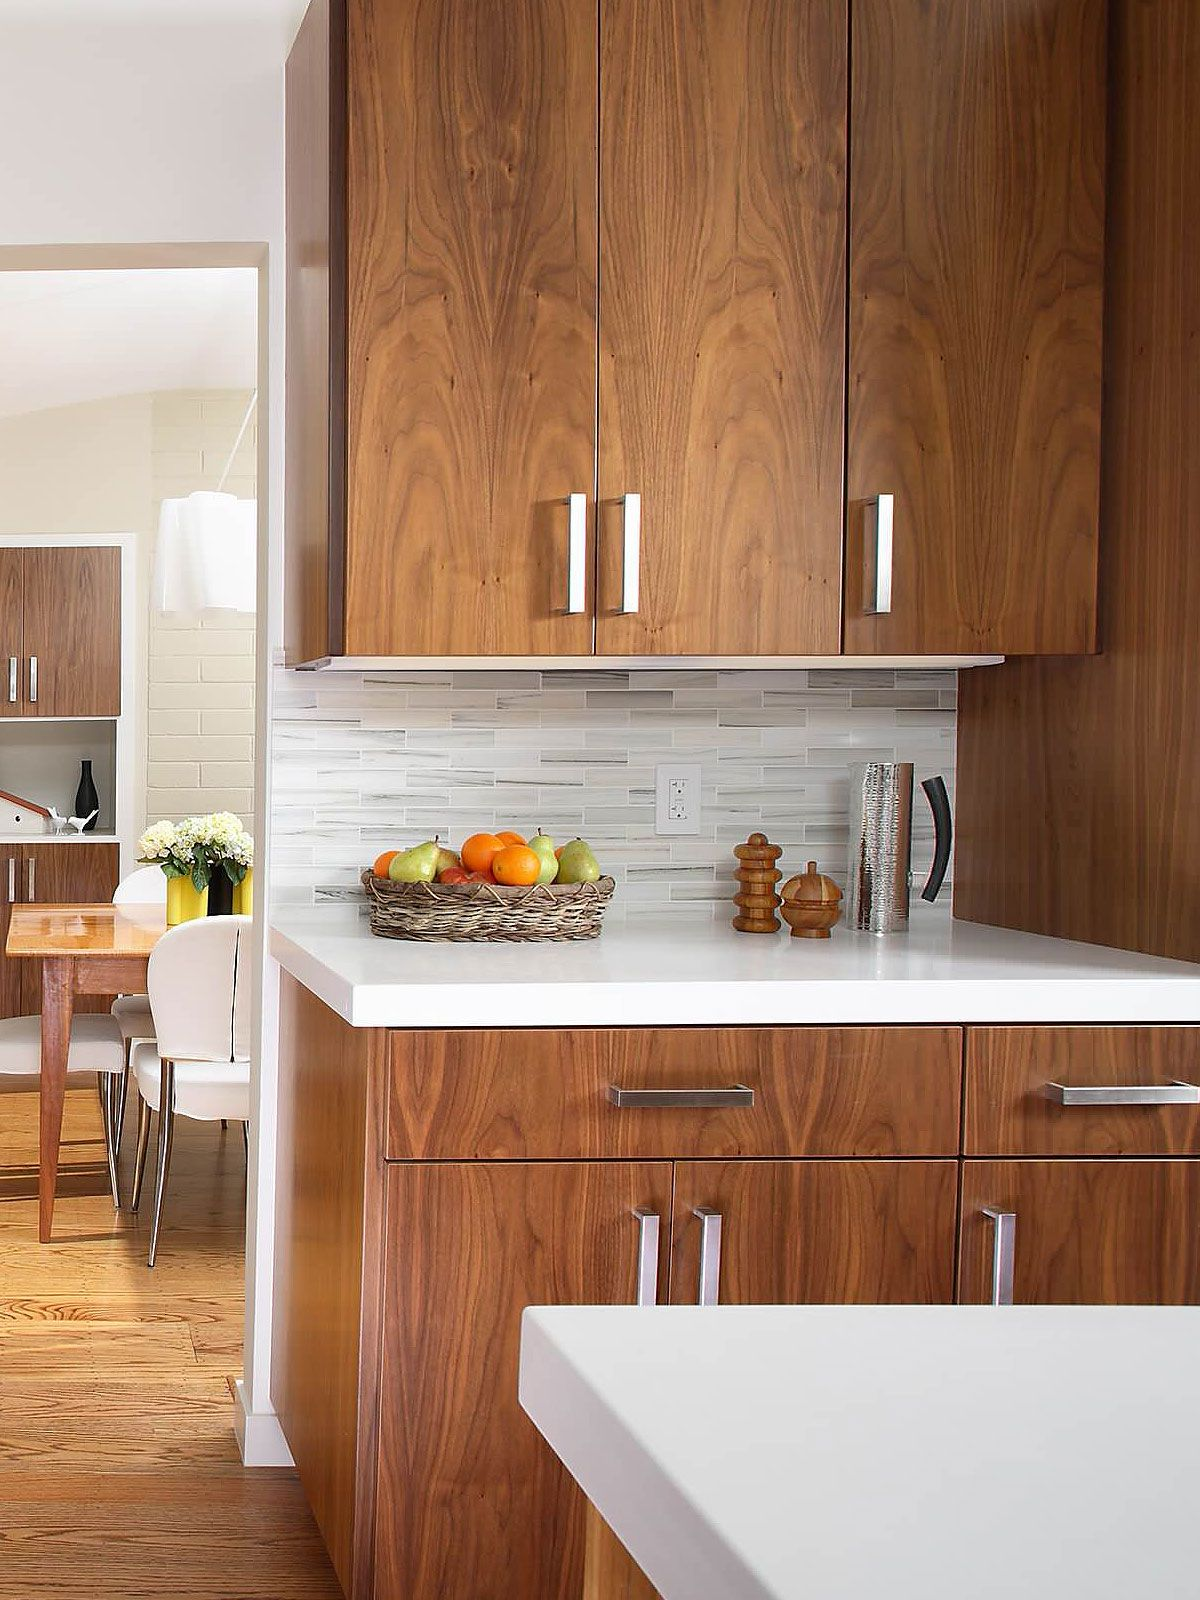 White Modern Subway Marble Mosaic Contemporary Design Style Kitchen Cabinets And Countertops Kitchen Design Kitchen Remodel